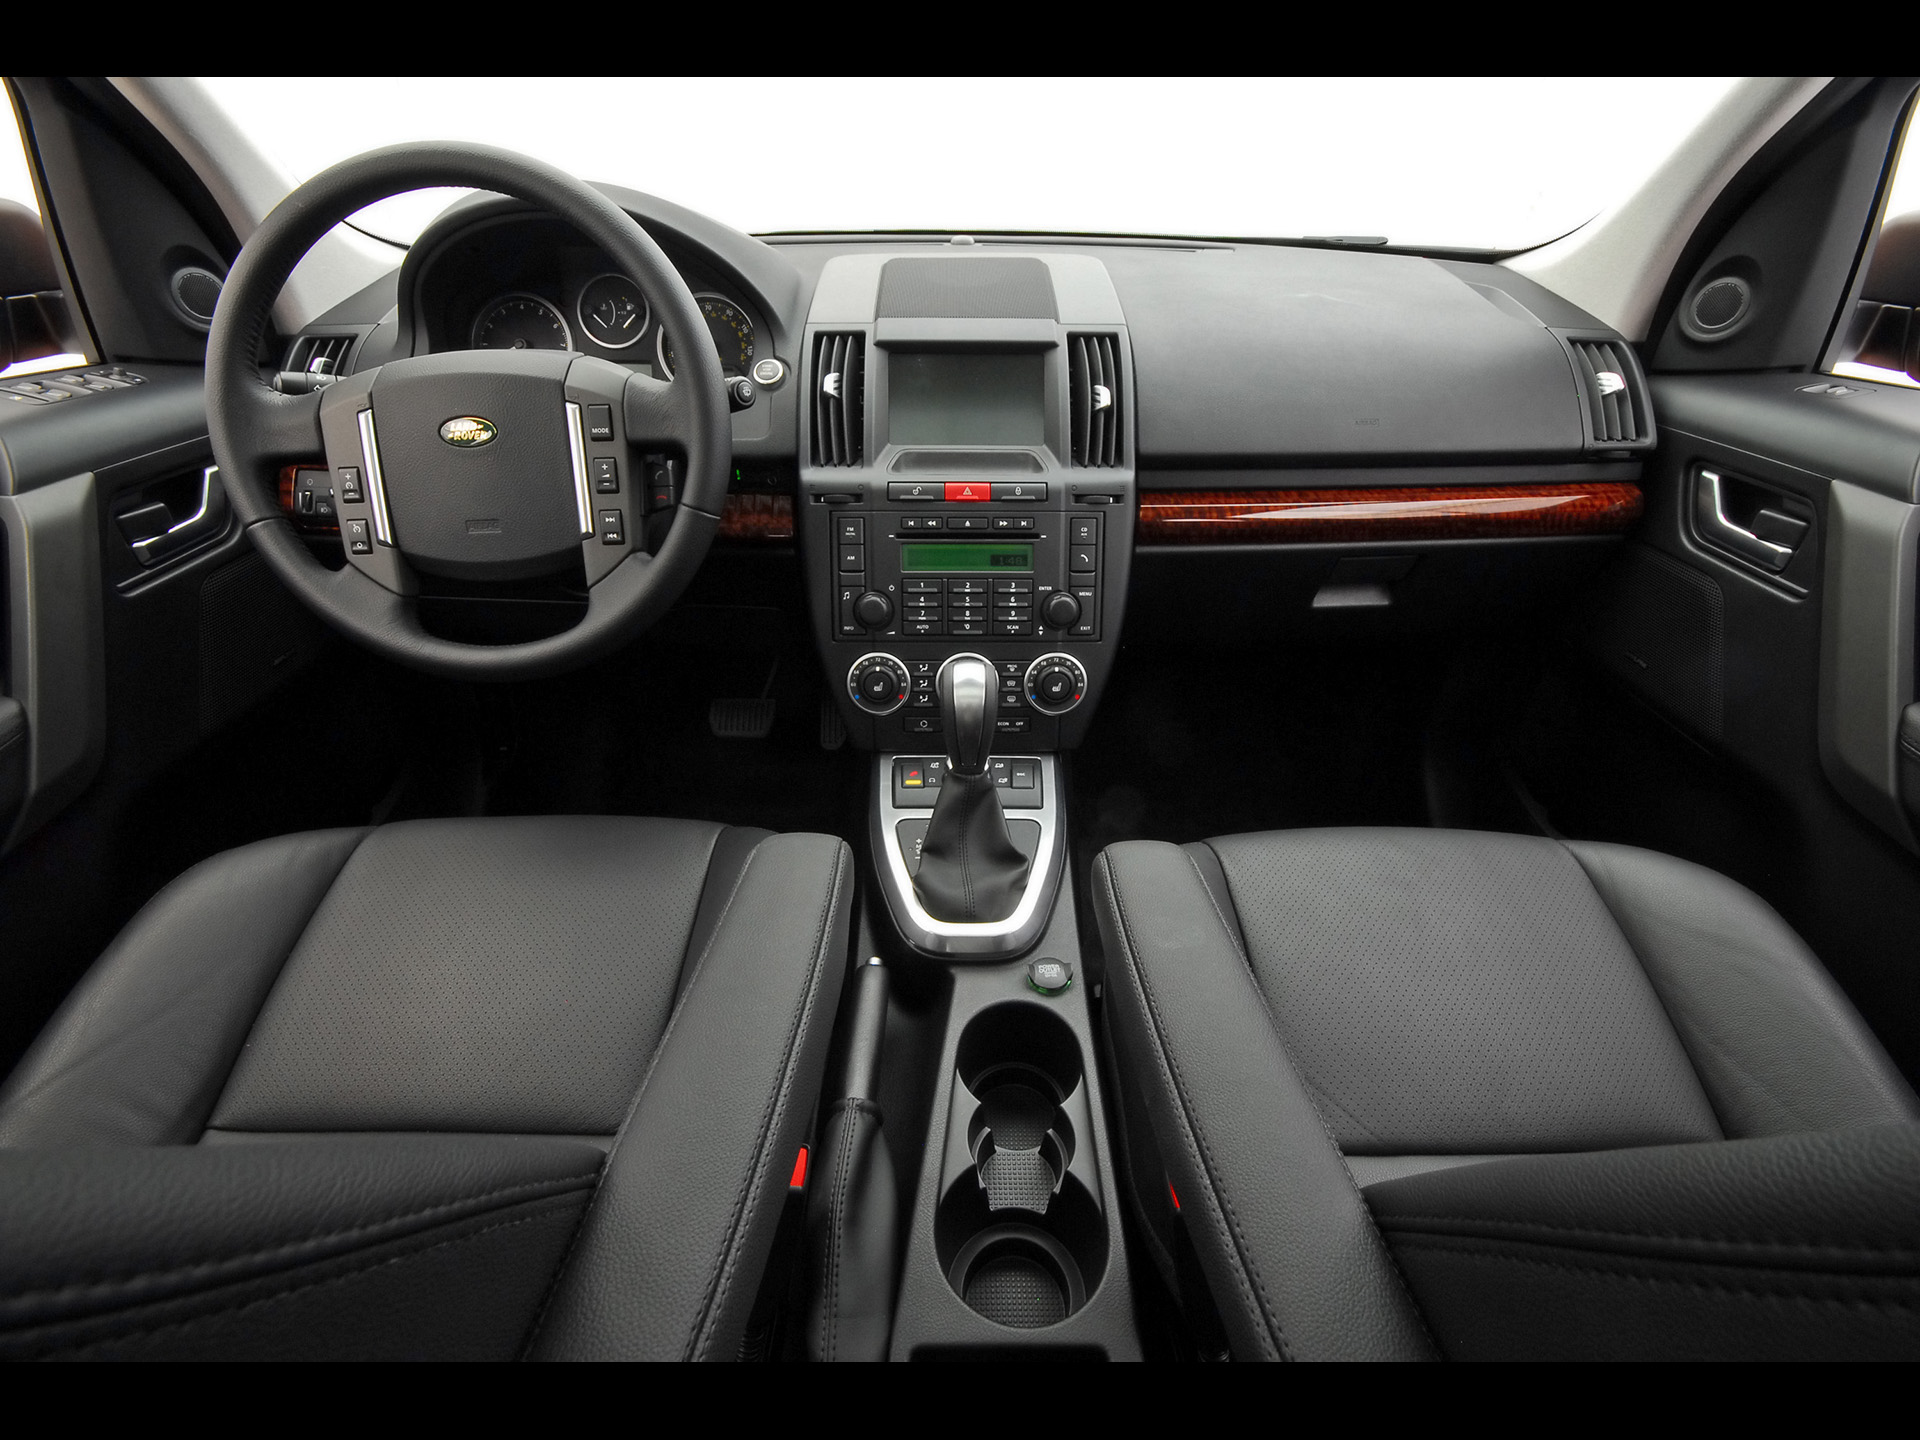 Land Rover LR2 interior #3